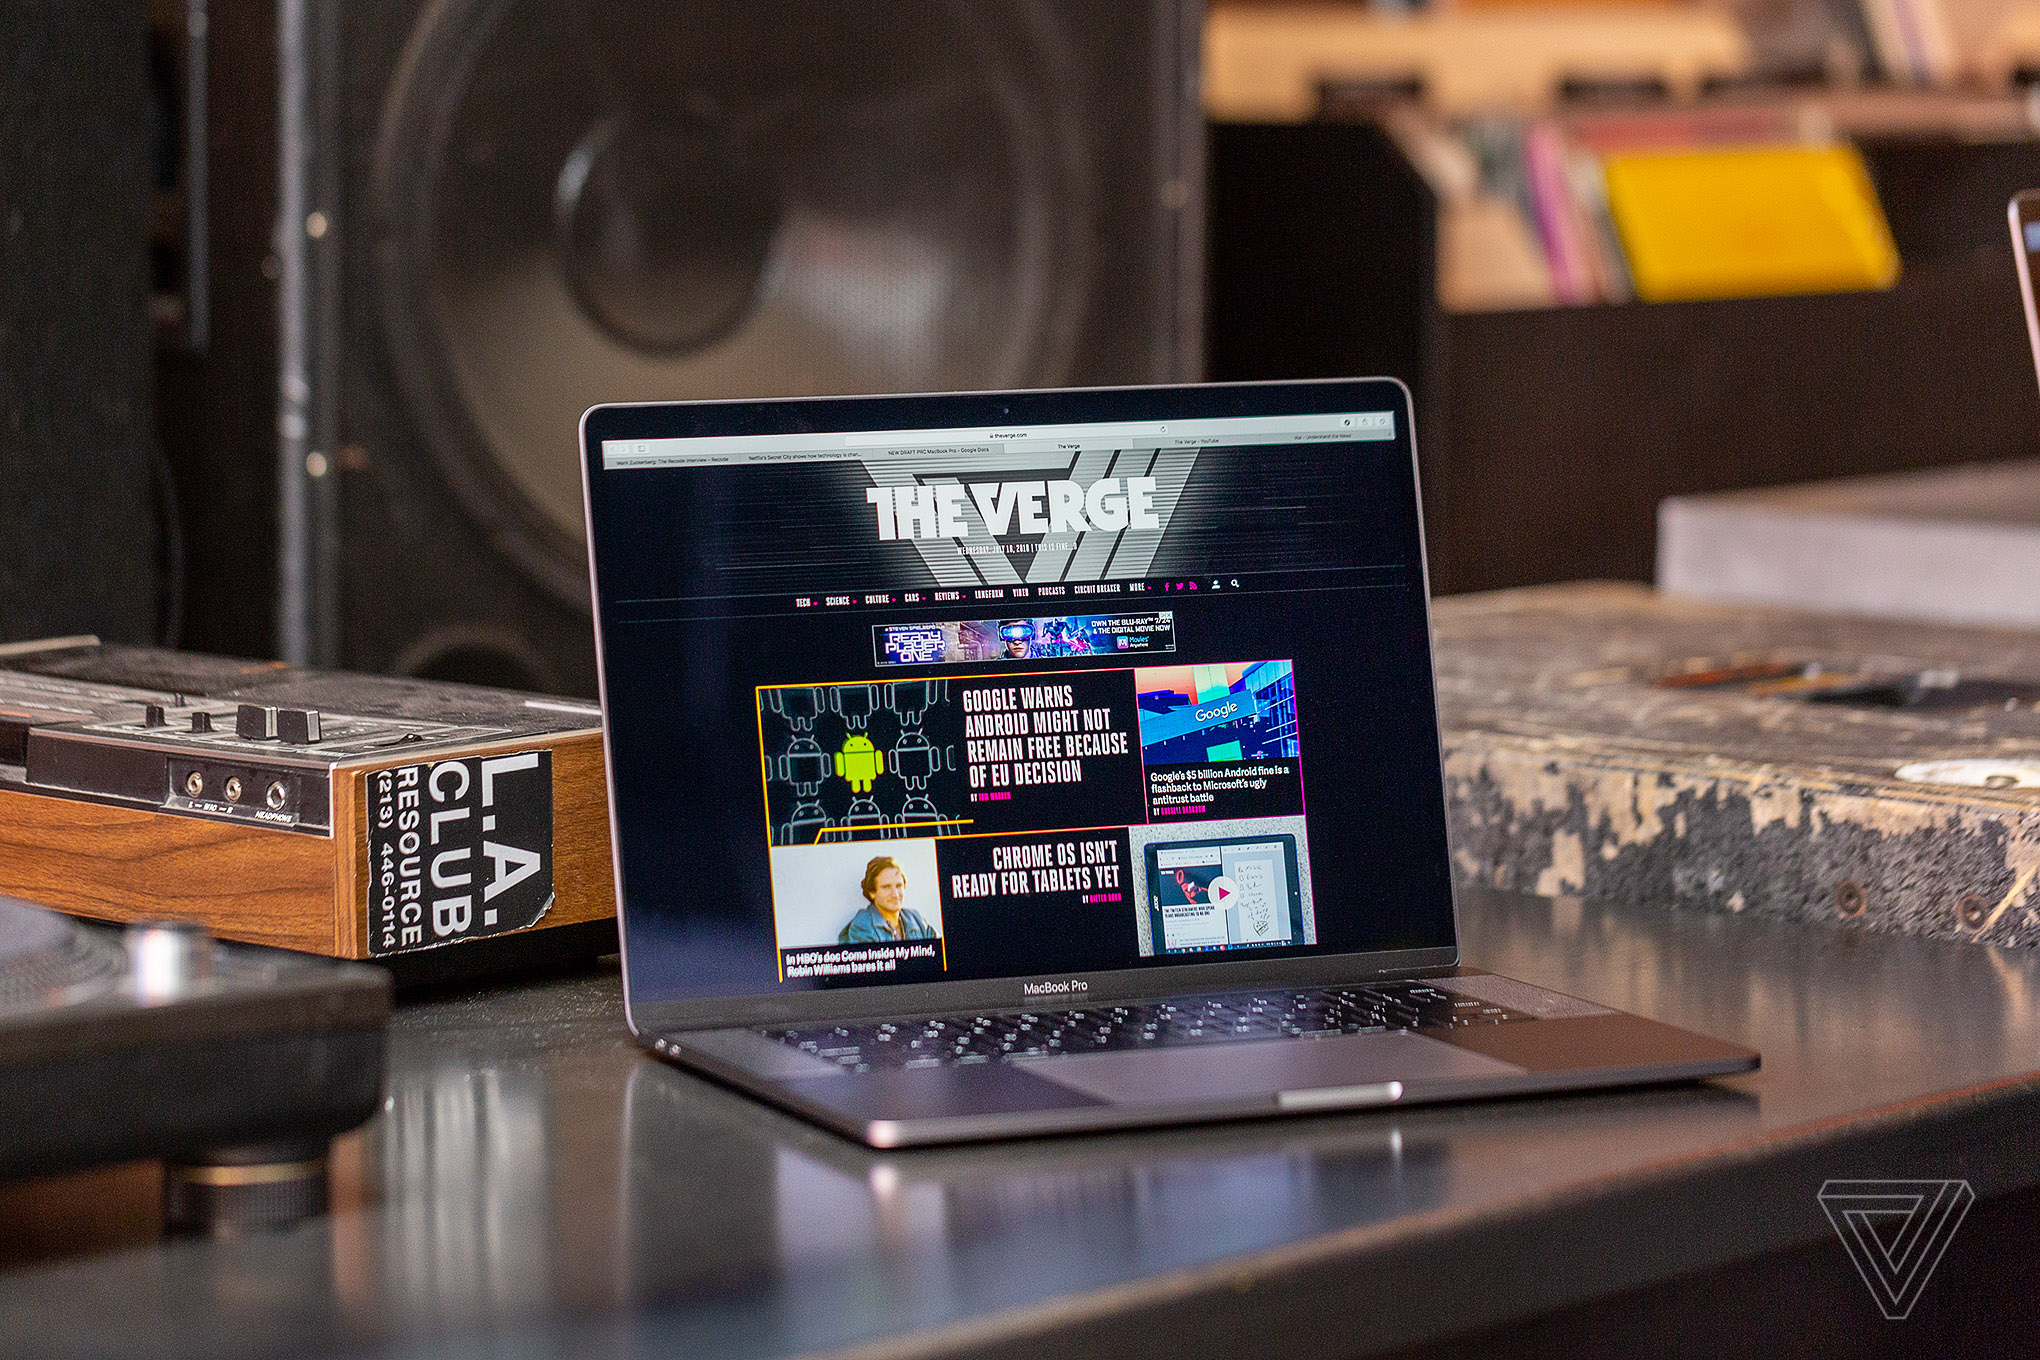 Zoom fixes major Mac webcam security flaw with emergency patch - The